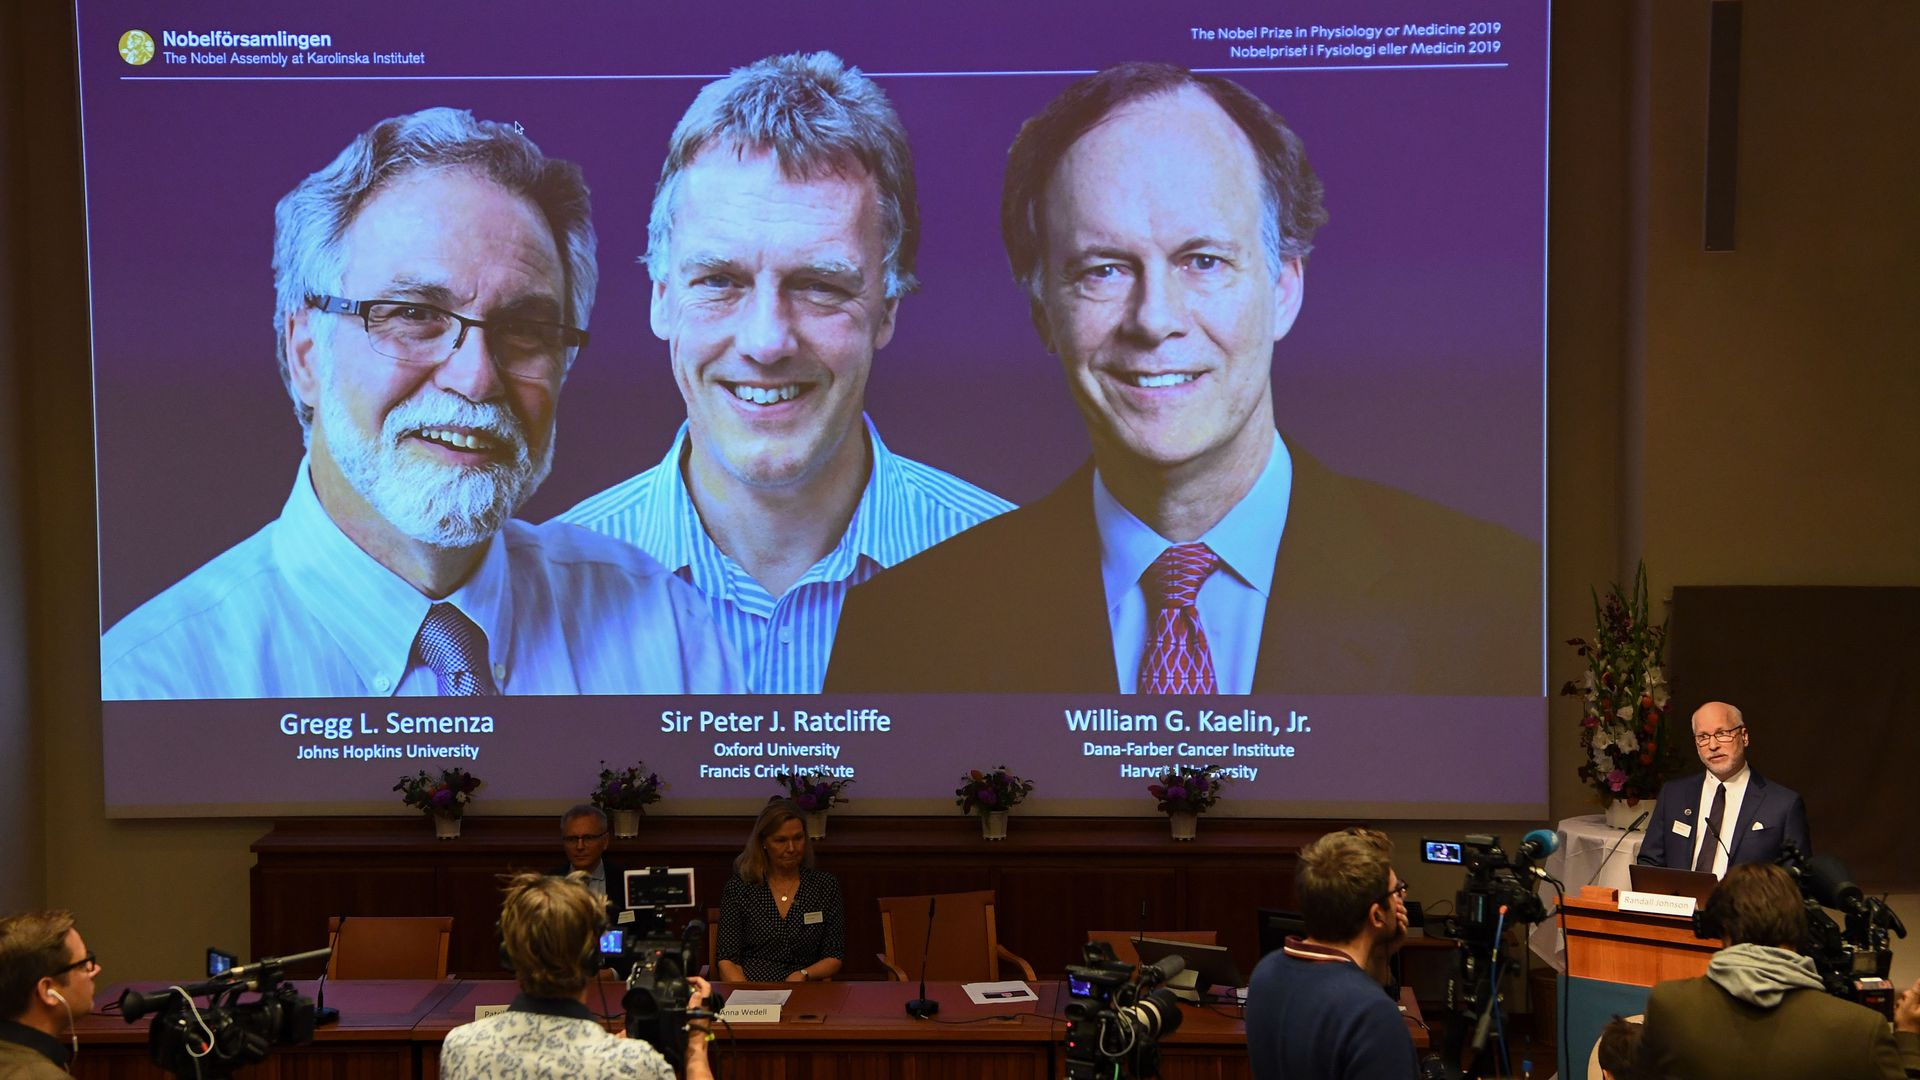 The Nobel Committee announces winners of the 2019 Nobel Prize in Physiology or Medicine.